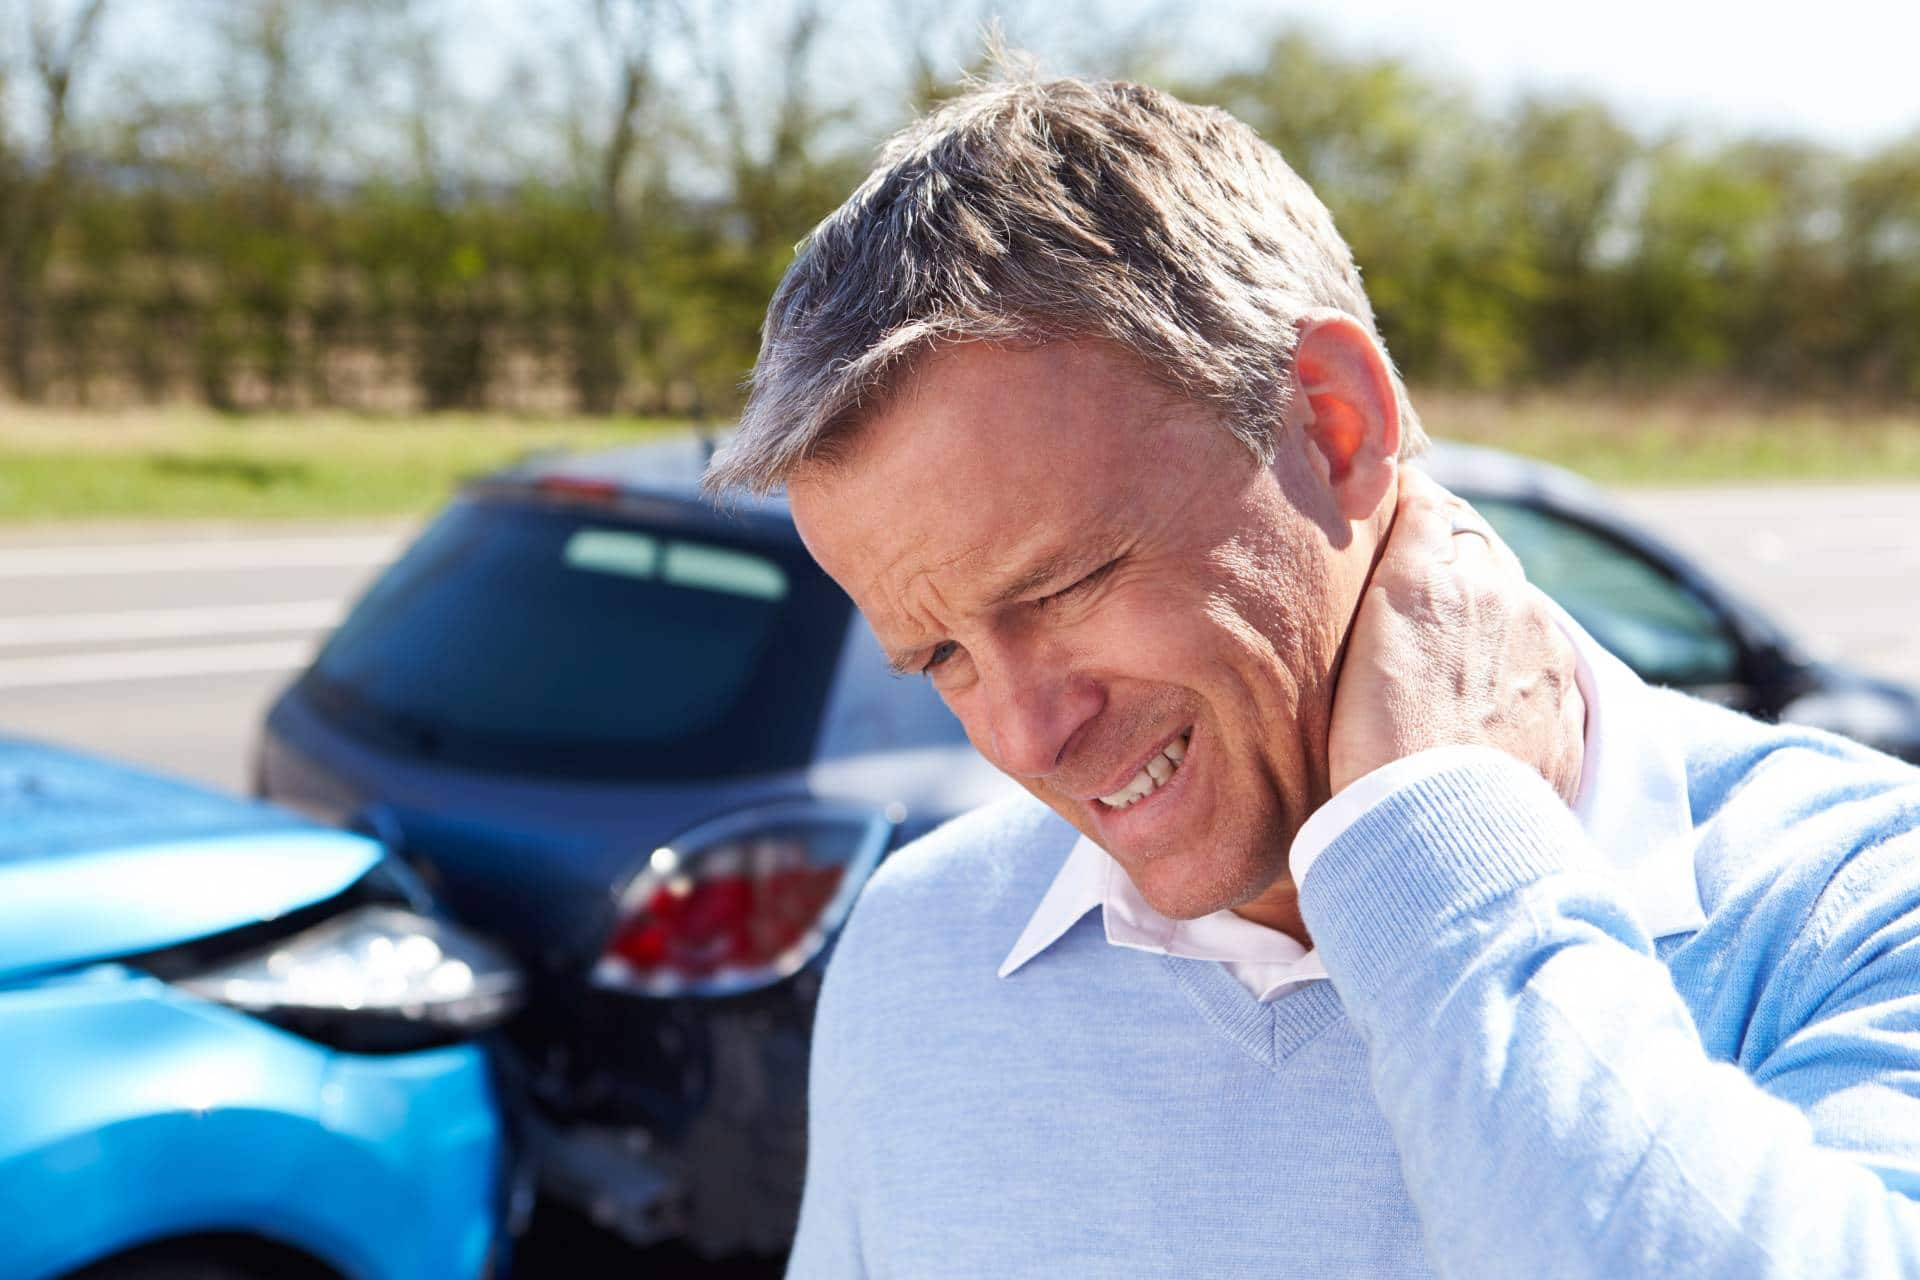 Hurt in a car accident? Schedule a free consultation with the Angell Law Firm.